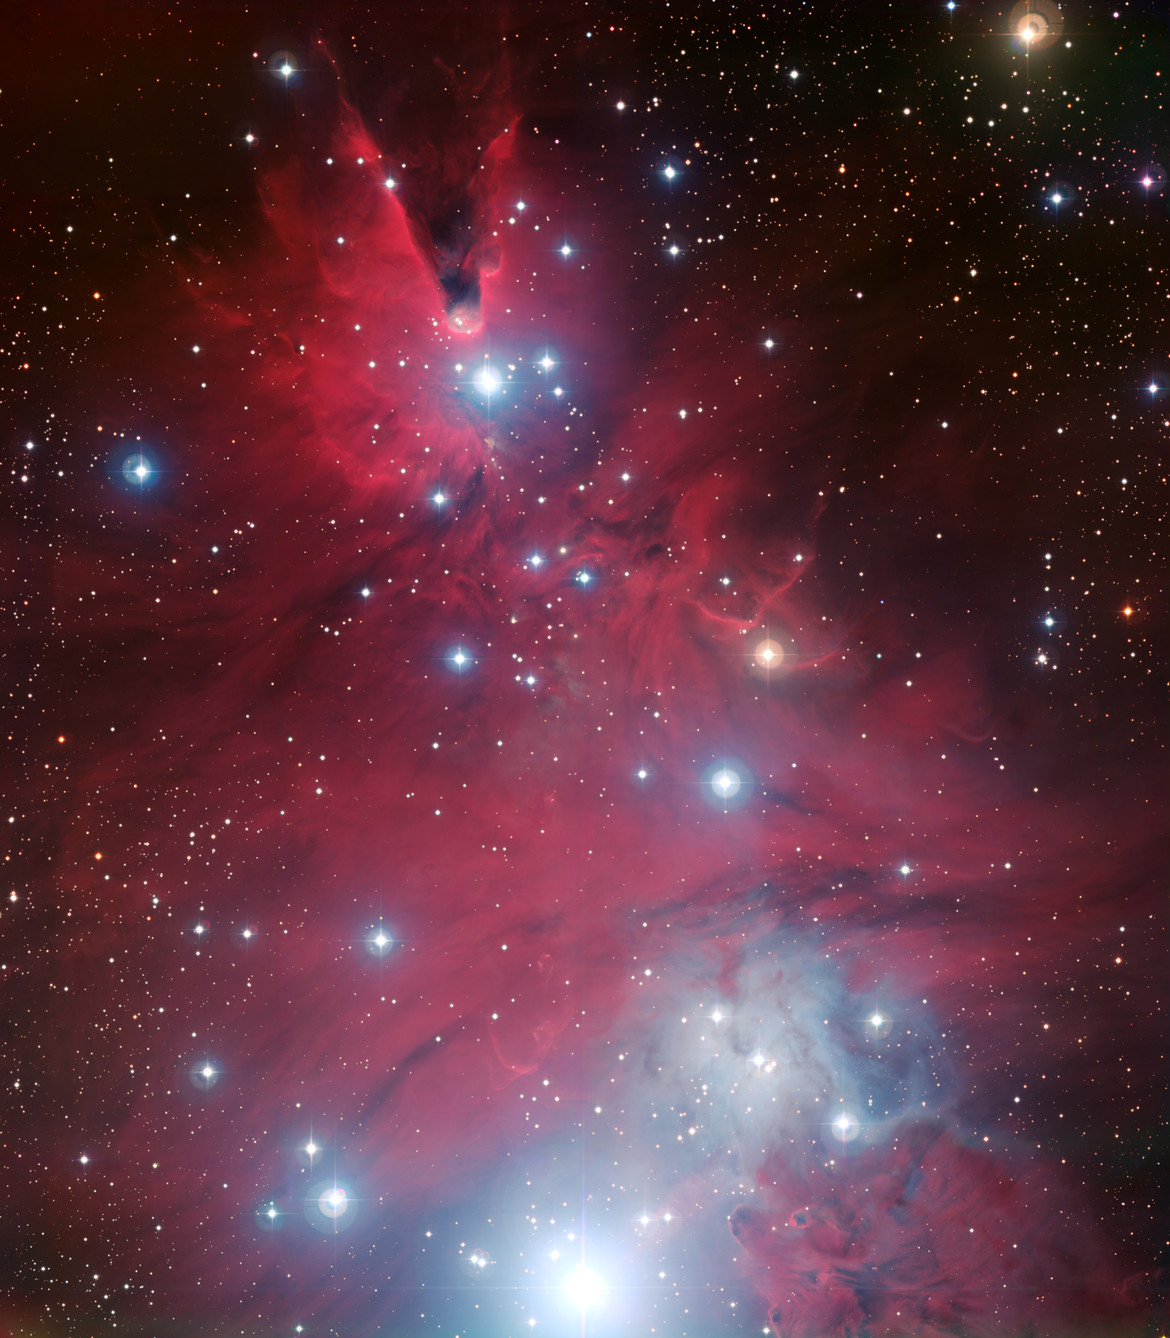 Wider view of NGC 2264, showing the Cone nebula. Credit: ESO